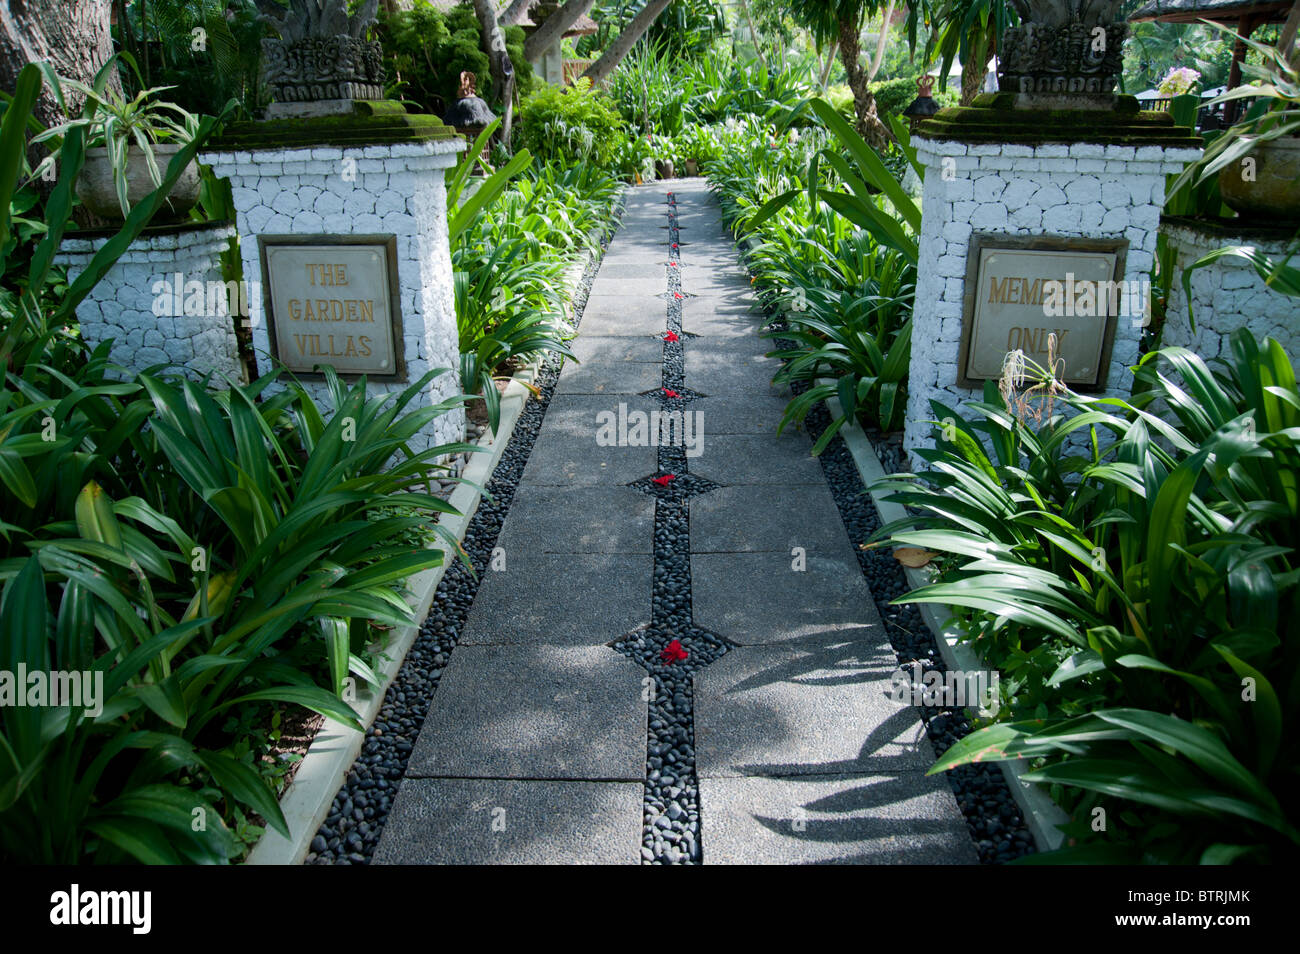 Entrance To The Grounds Of The Garden Villas At The Melia Bali Hotel Stock Photo Alamy